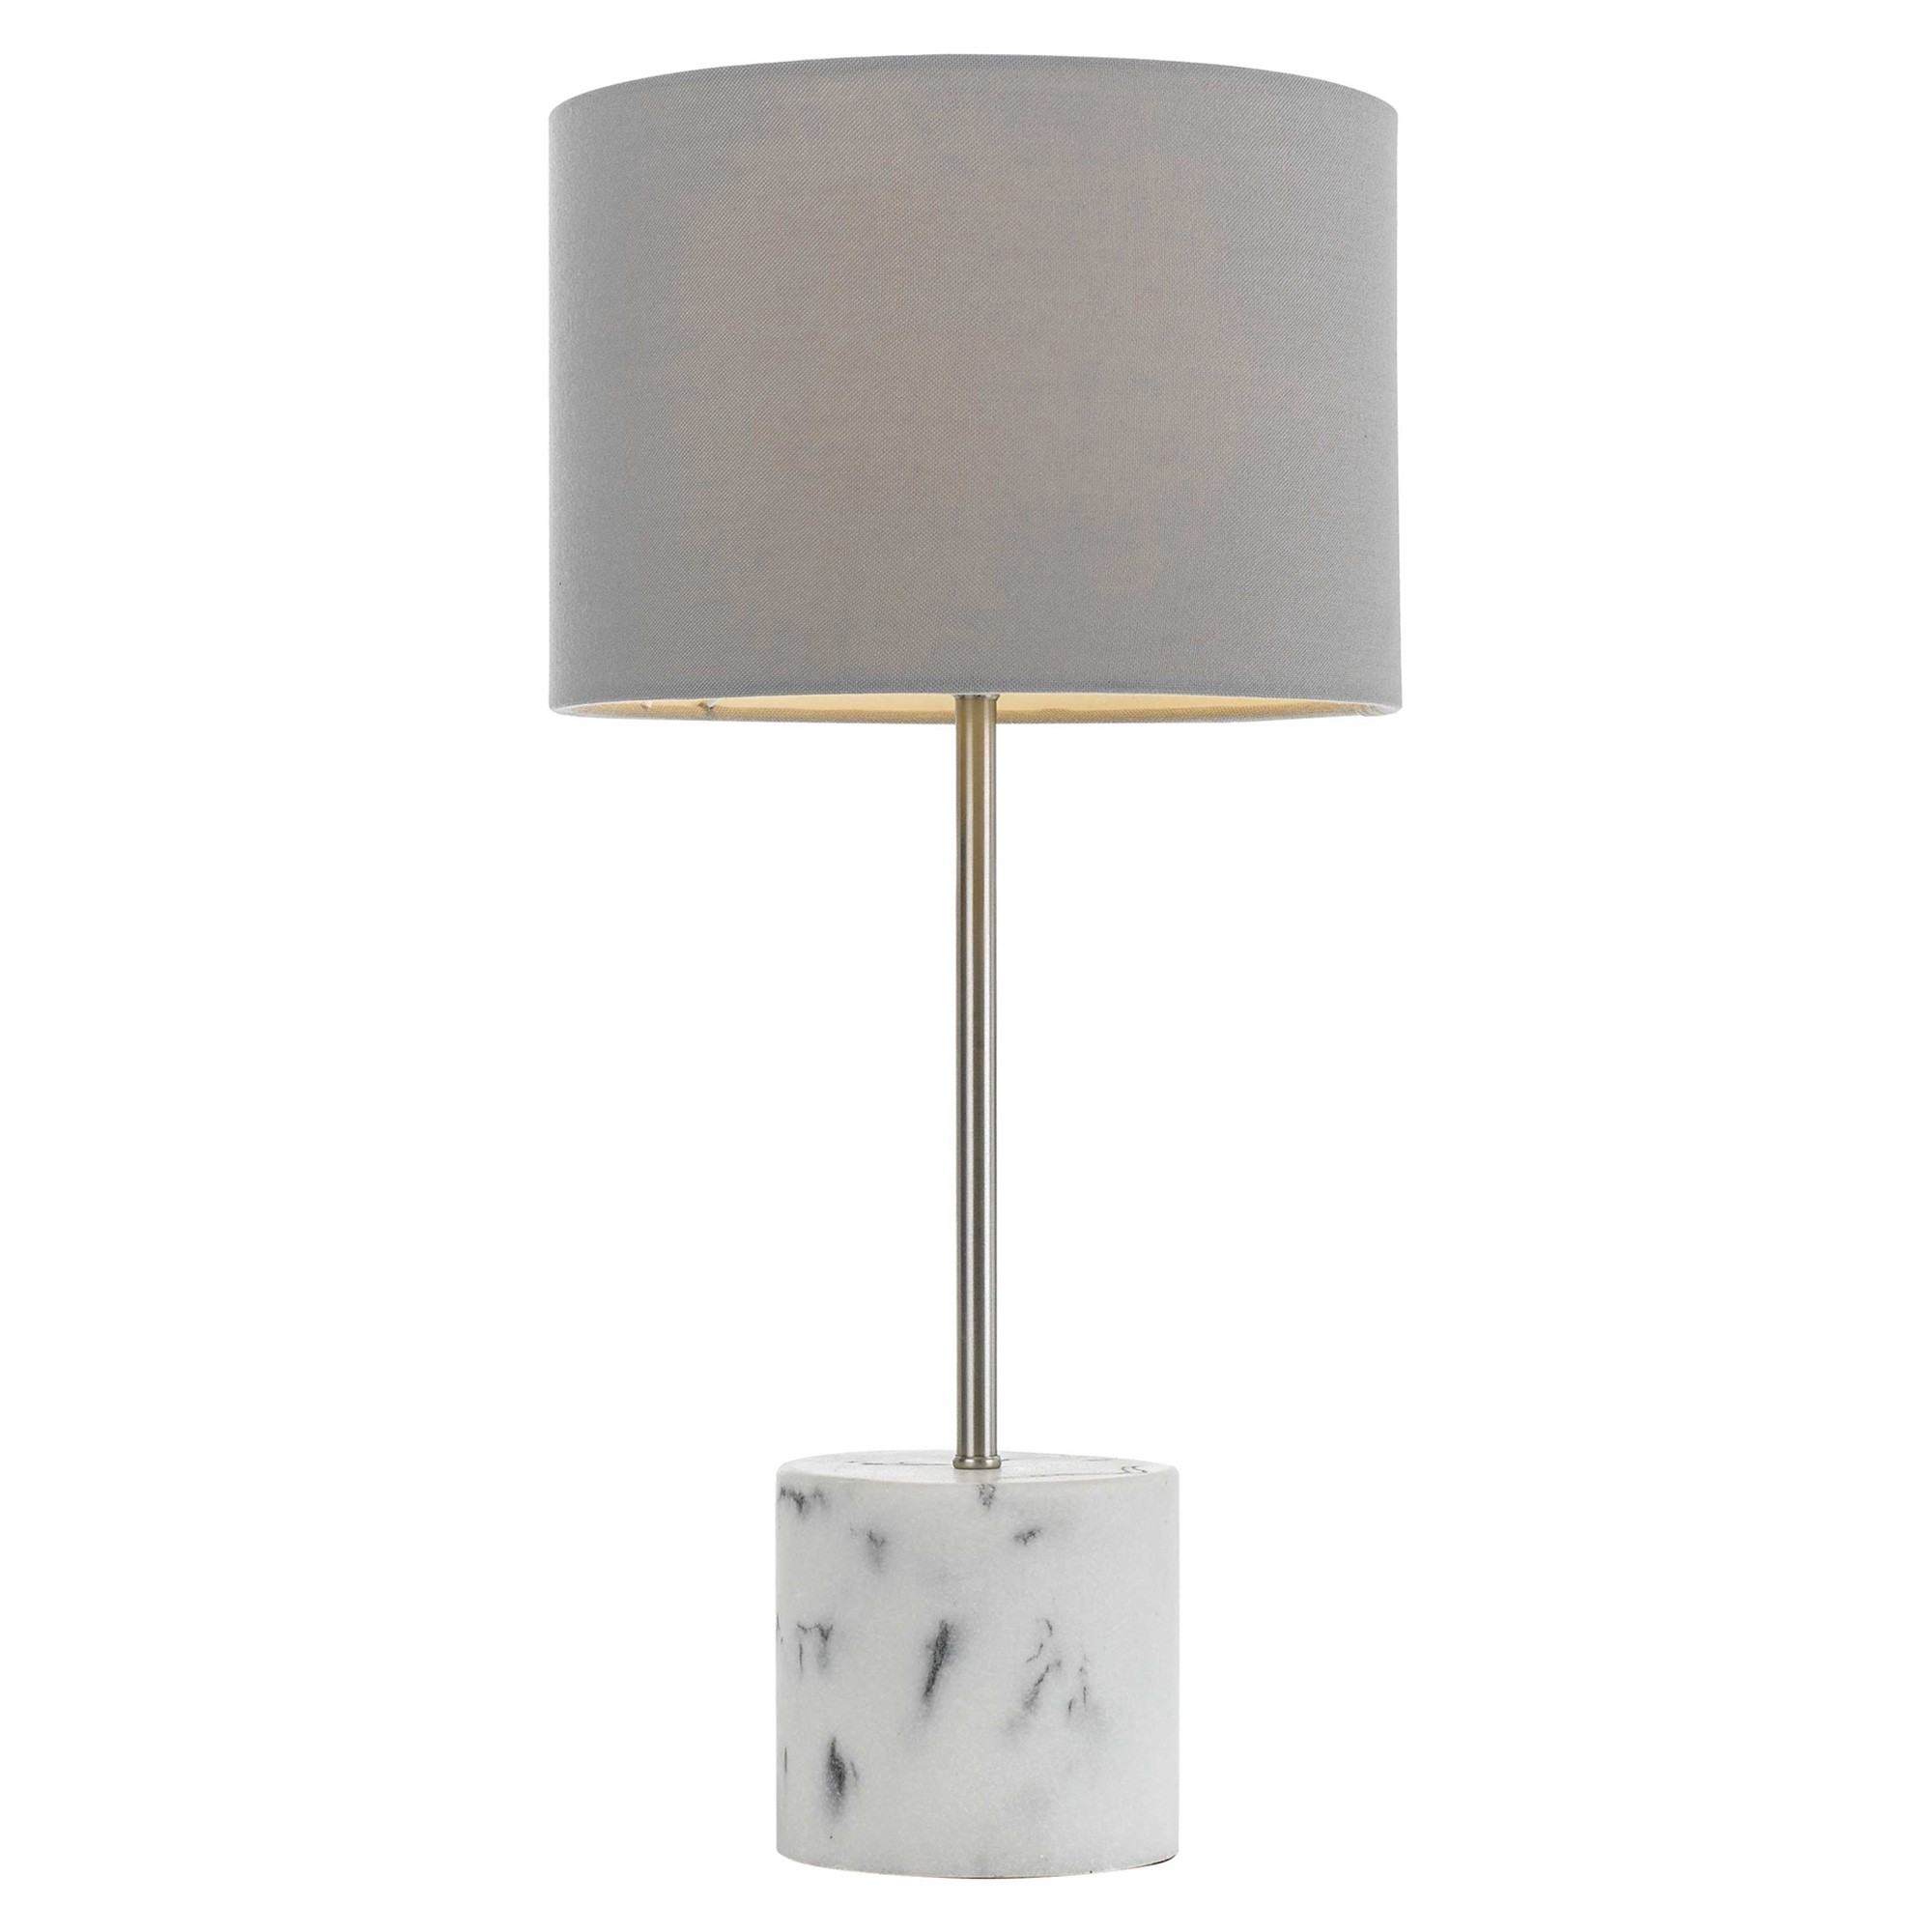 Arkos Ceramic Base Table Lamp, White Marble